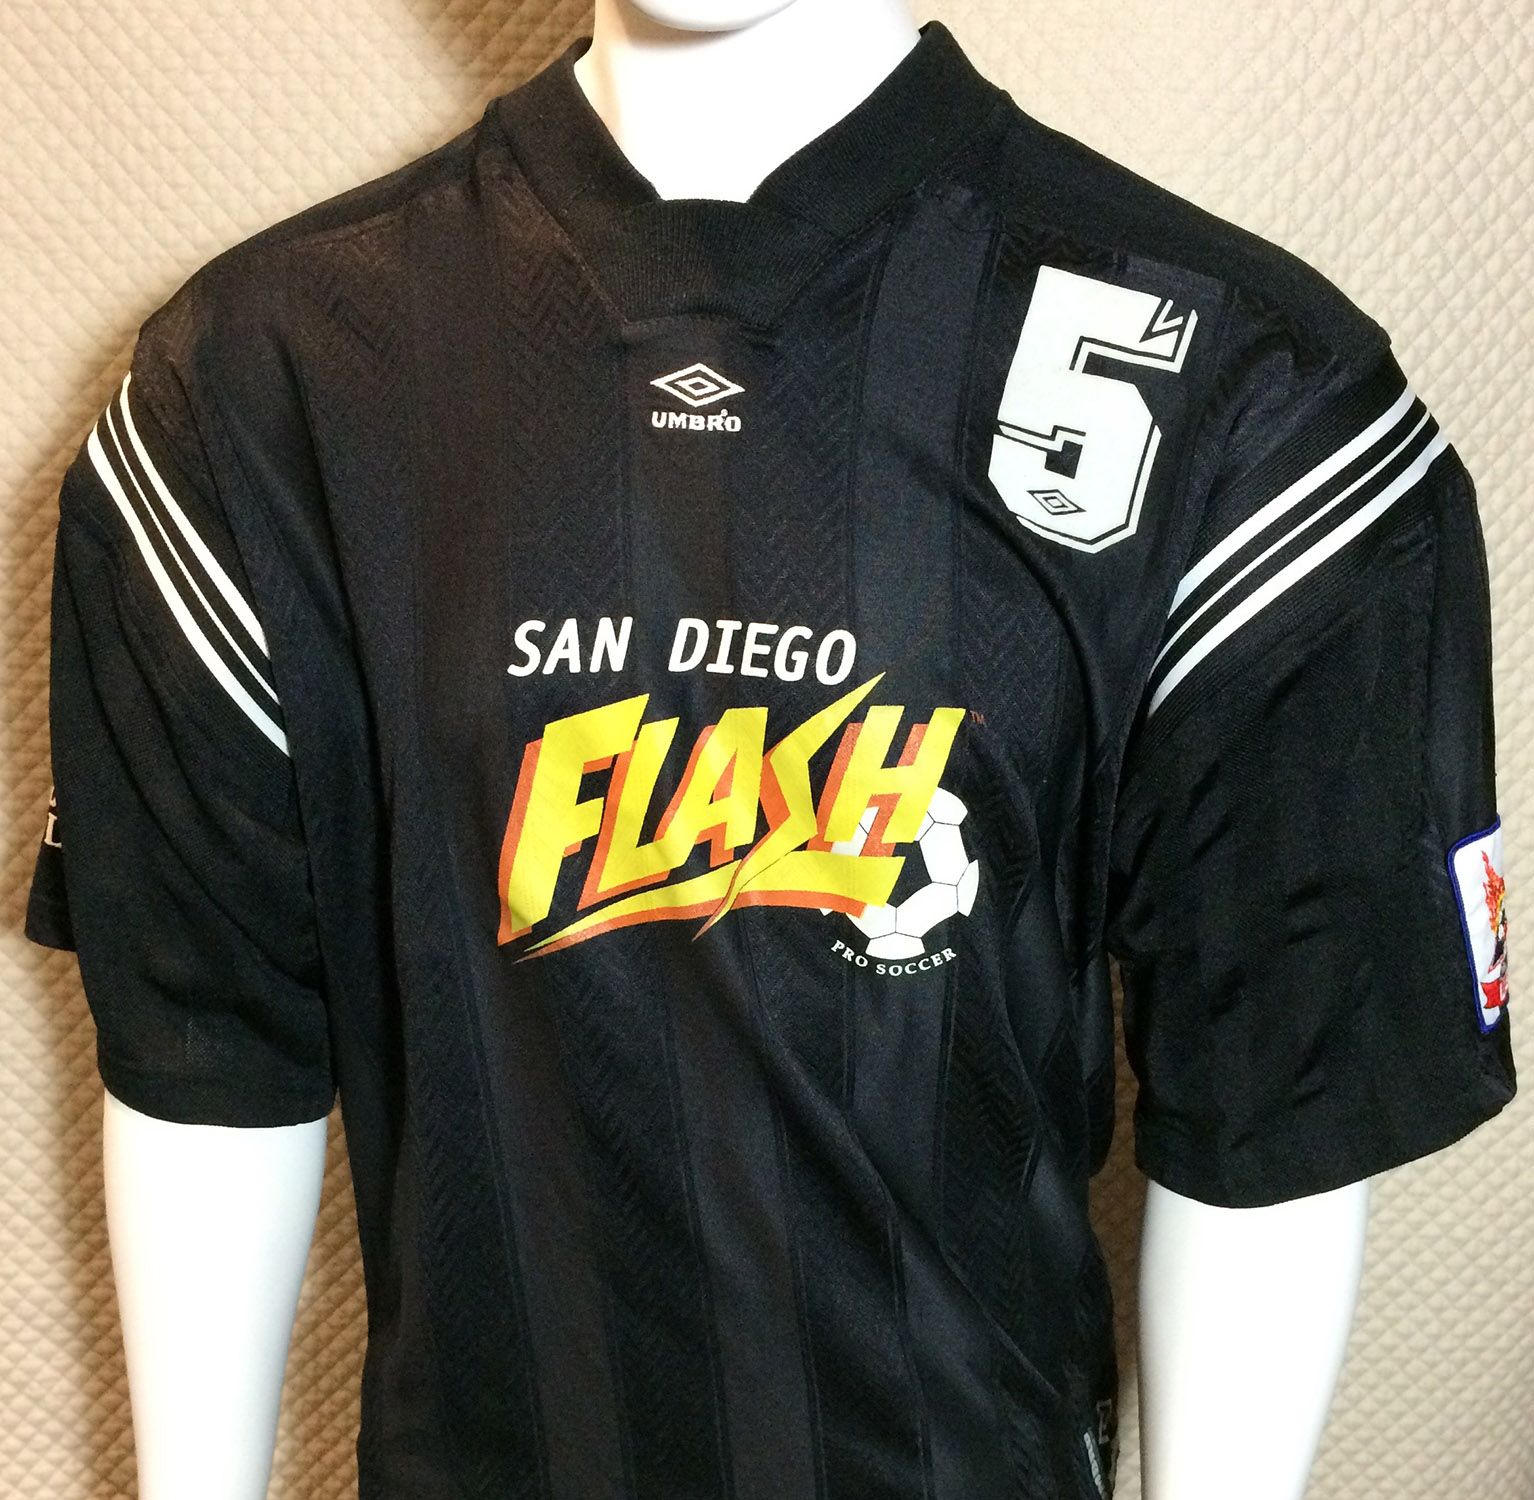 San Diego Flash 1999 A-League Jersey